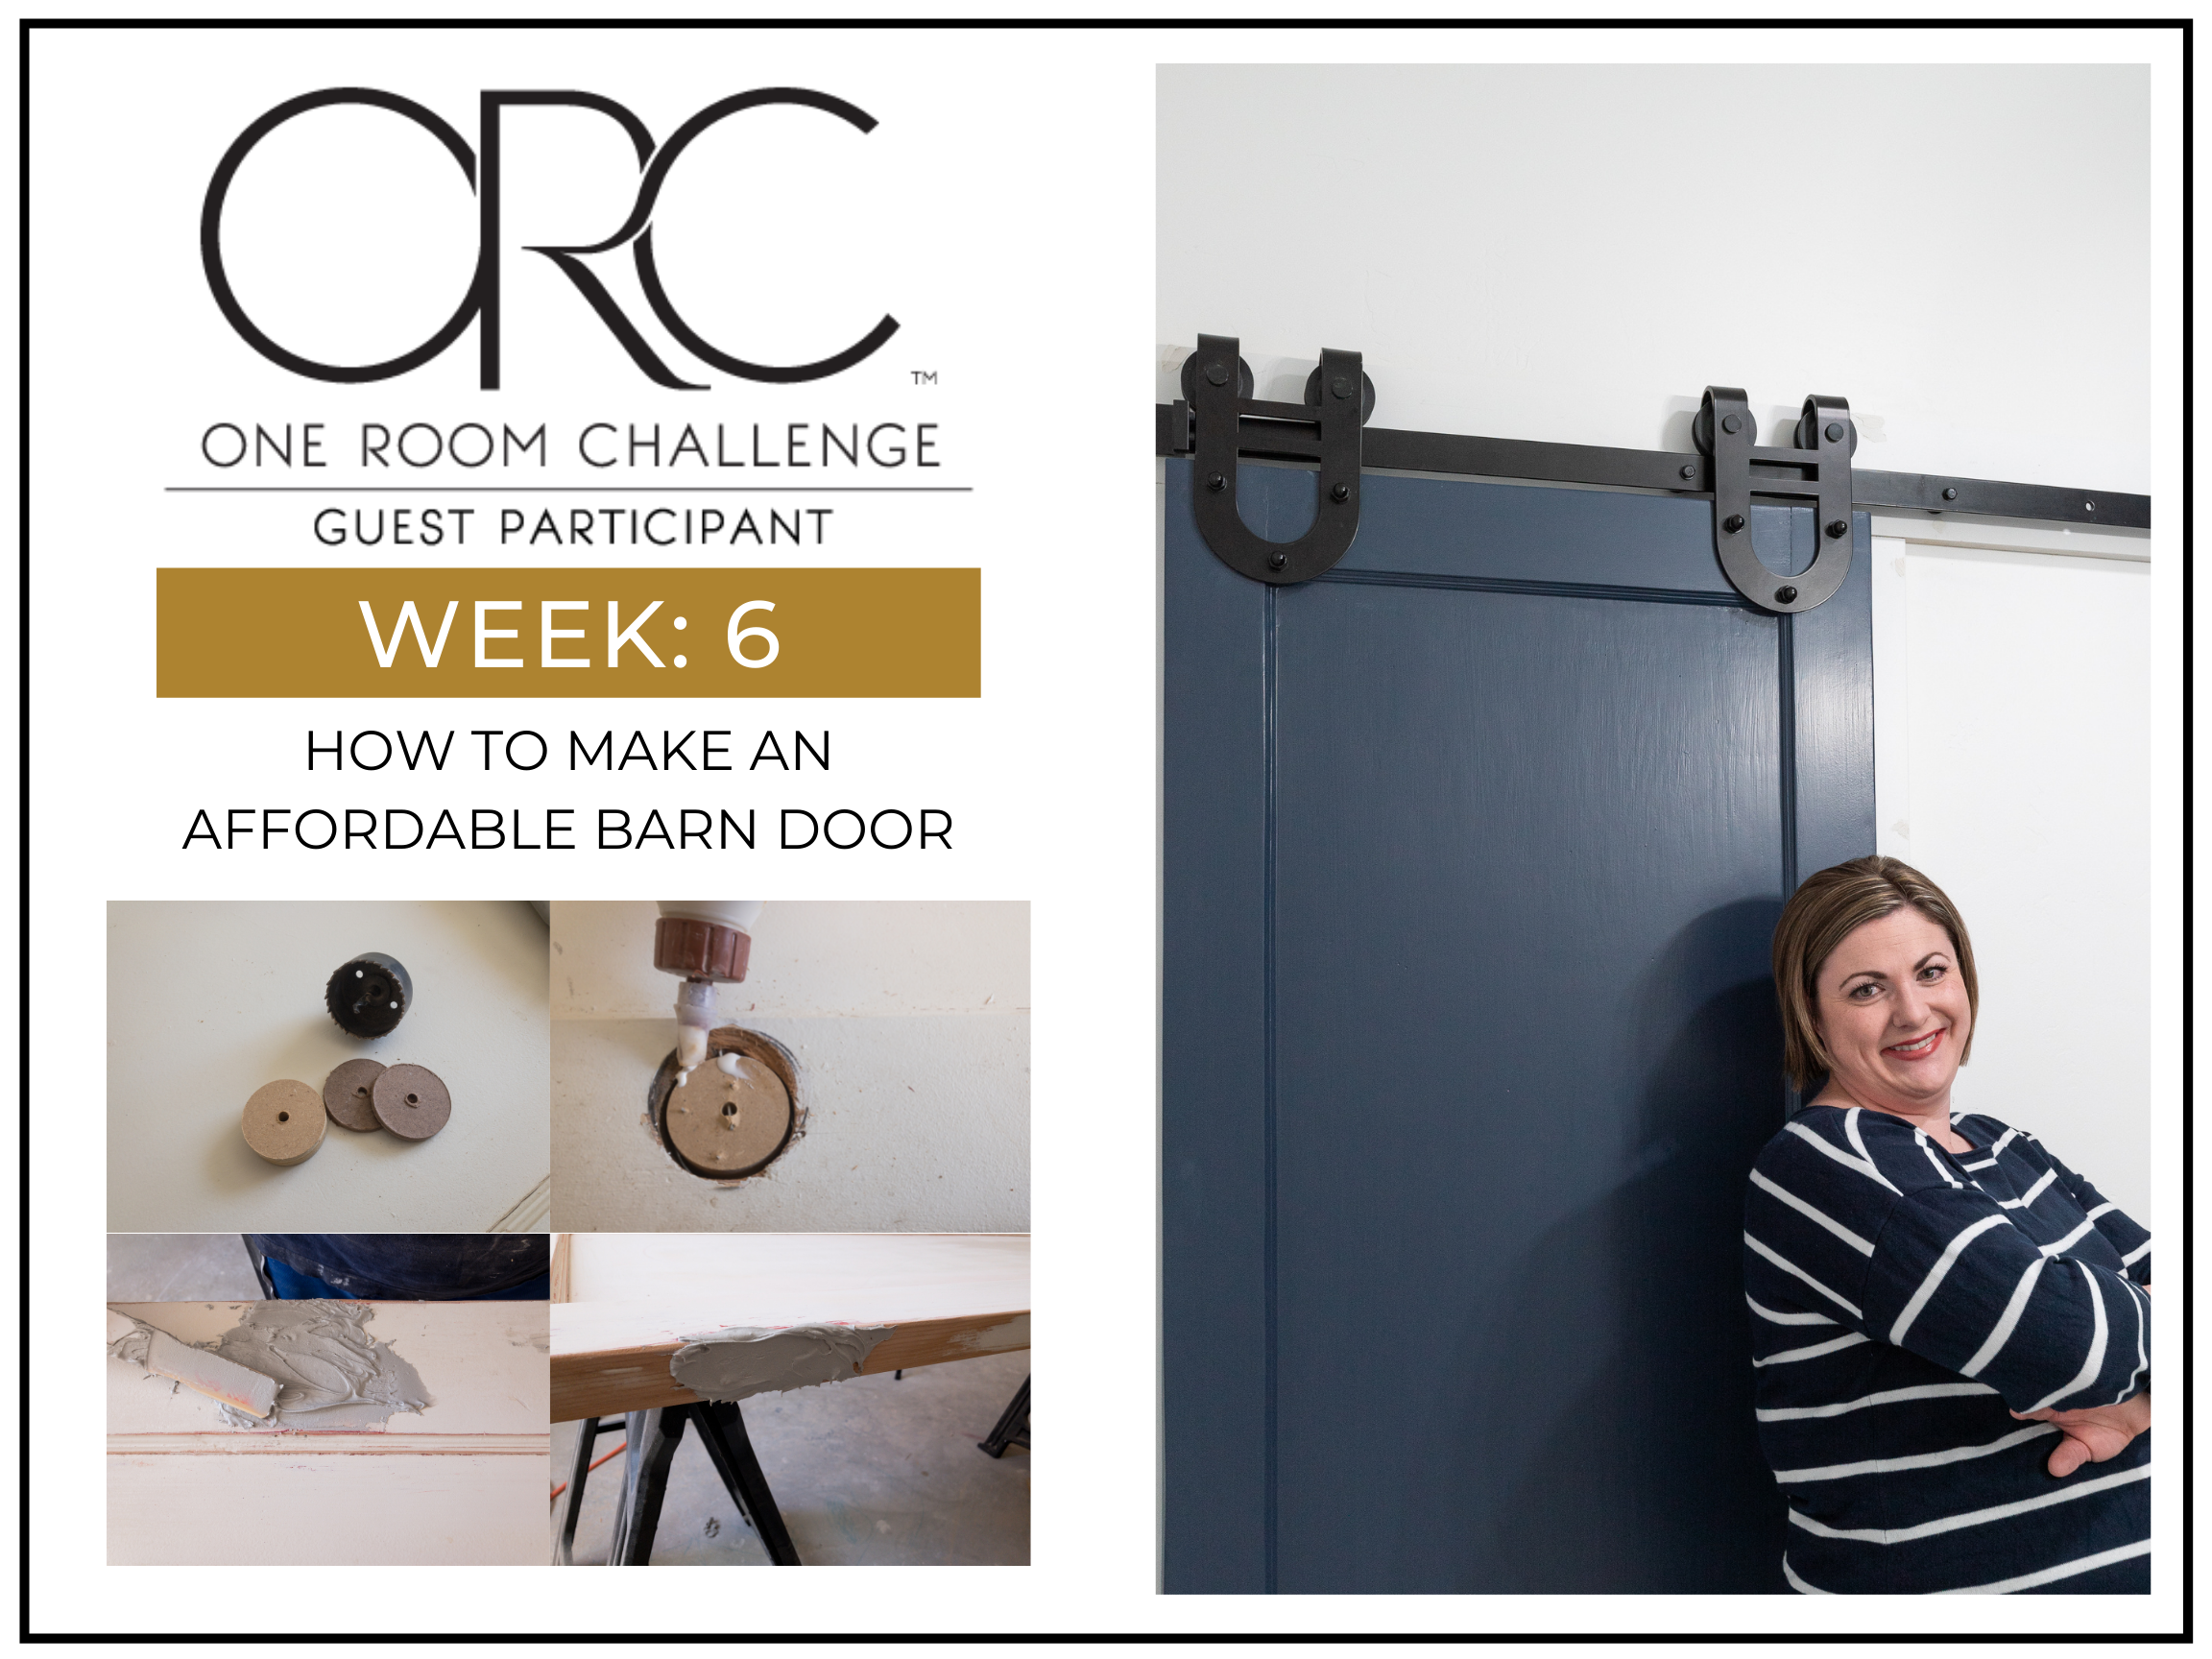 How To Make an Affordable Barn Door for the Bathroom